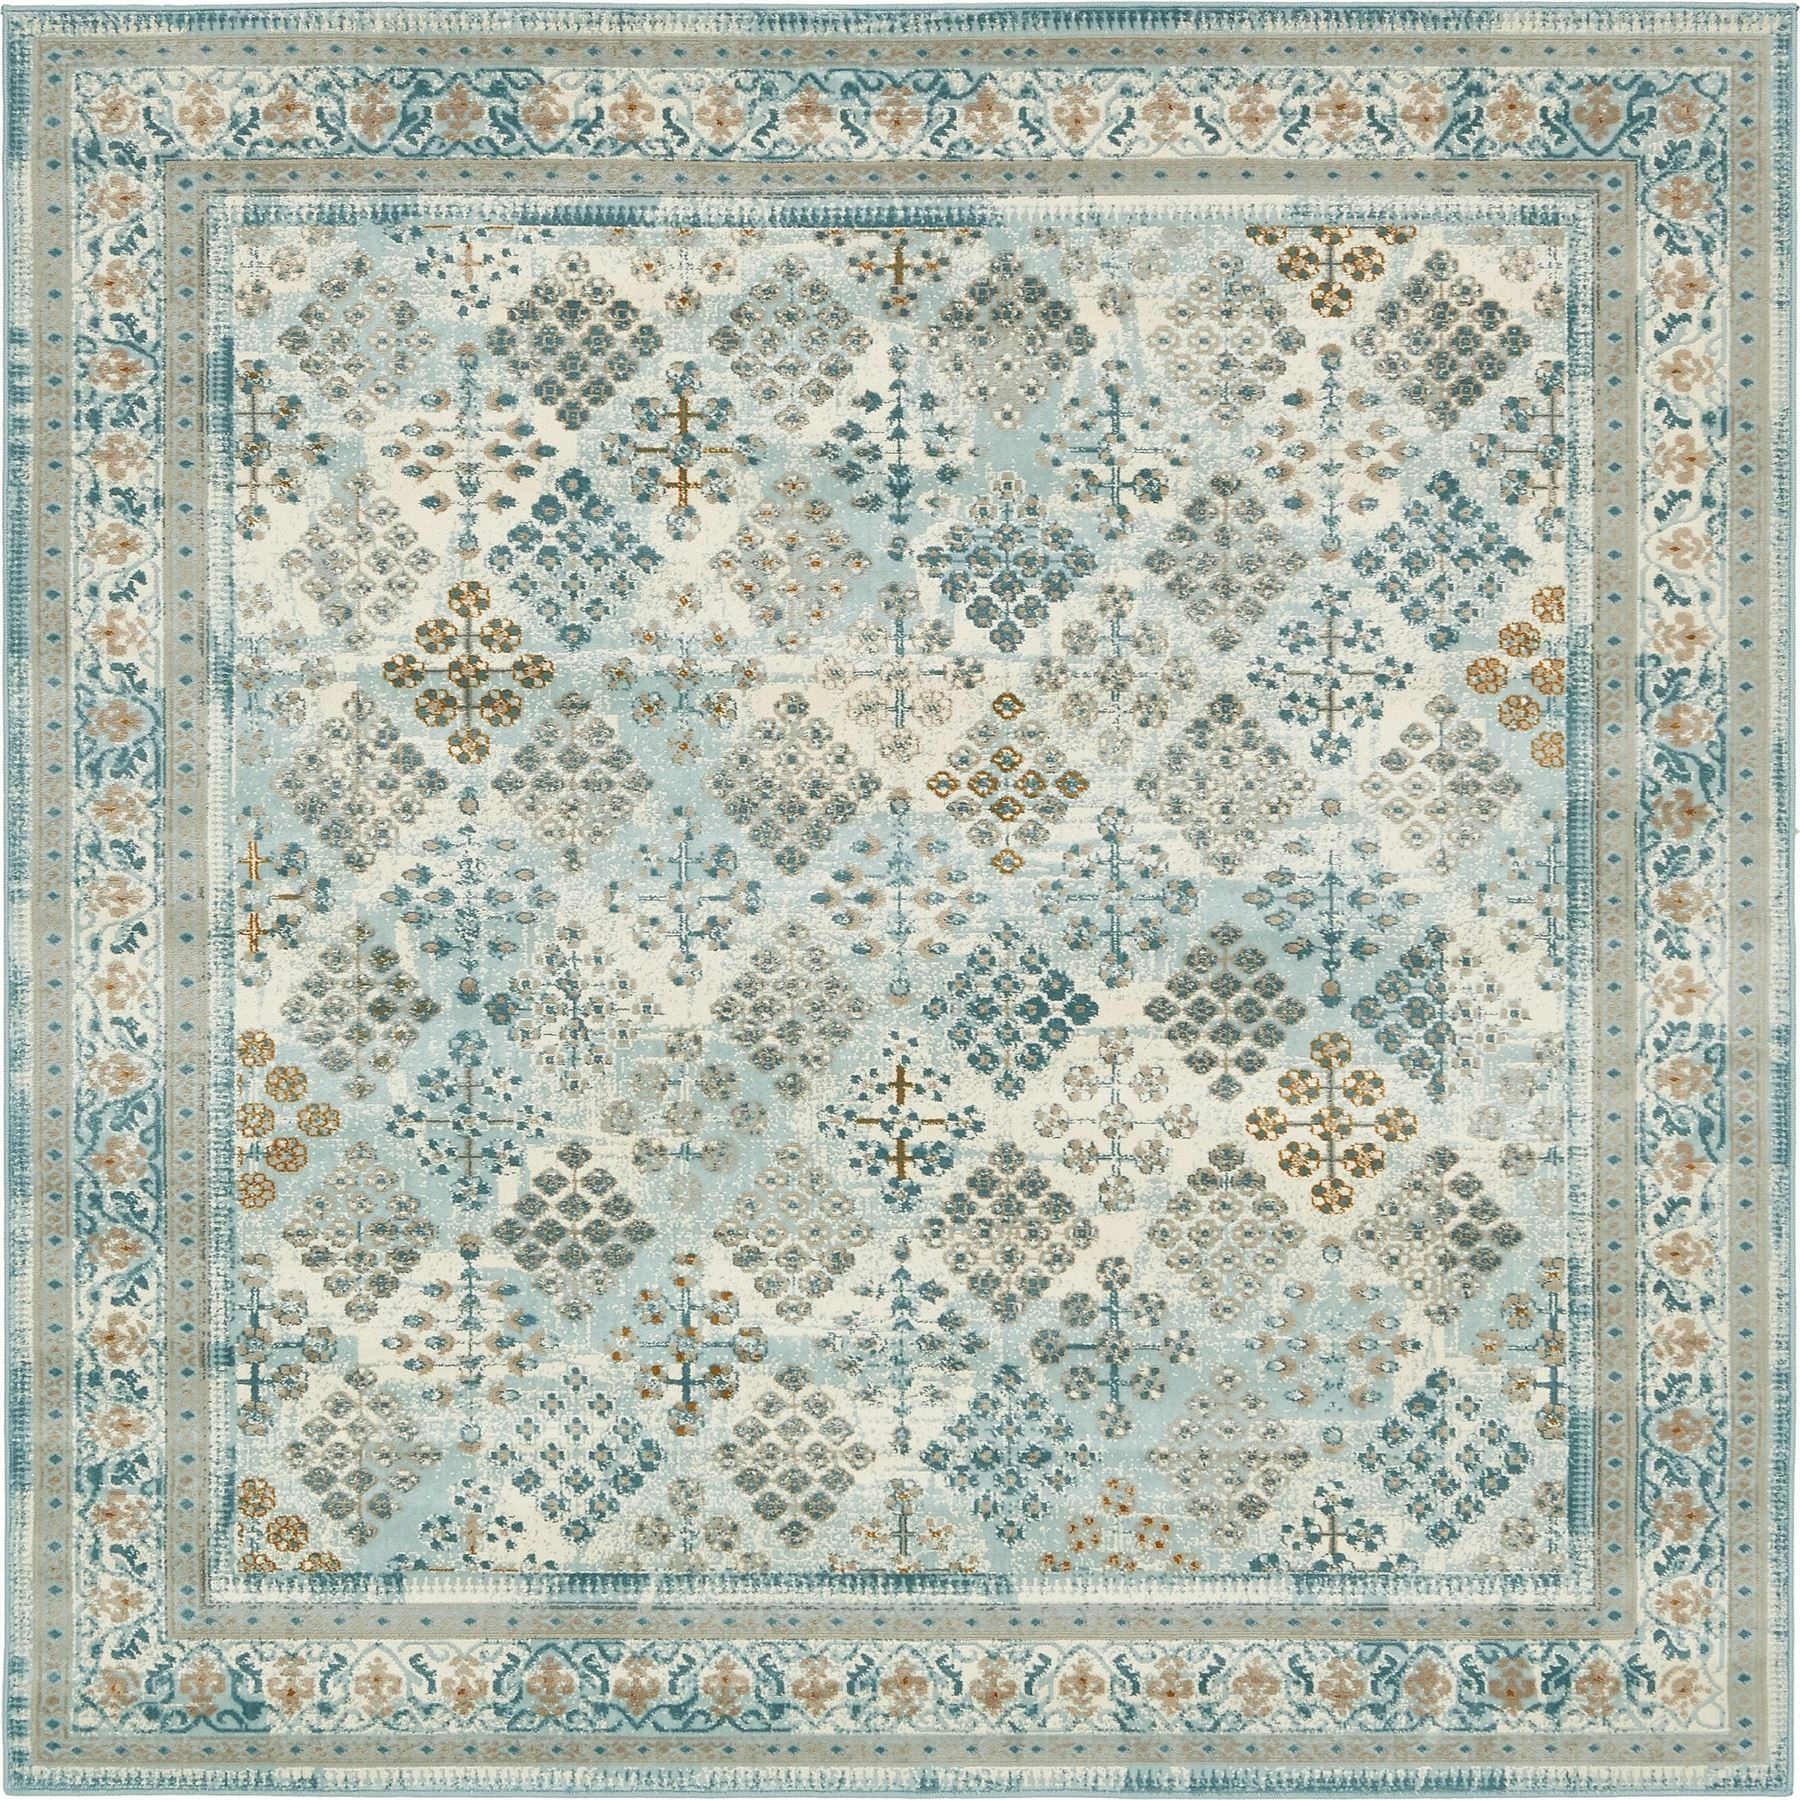 Modern Rugs Vintage: Over-dyed Traditional Carpet Vintage Style Modern Rugs